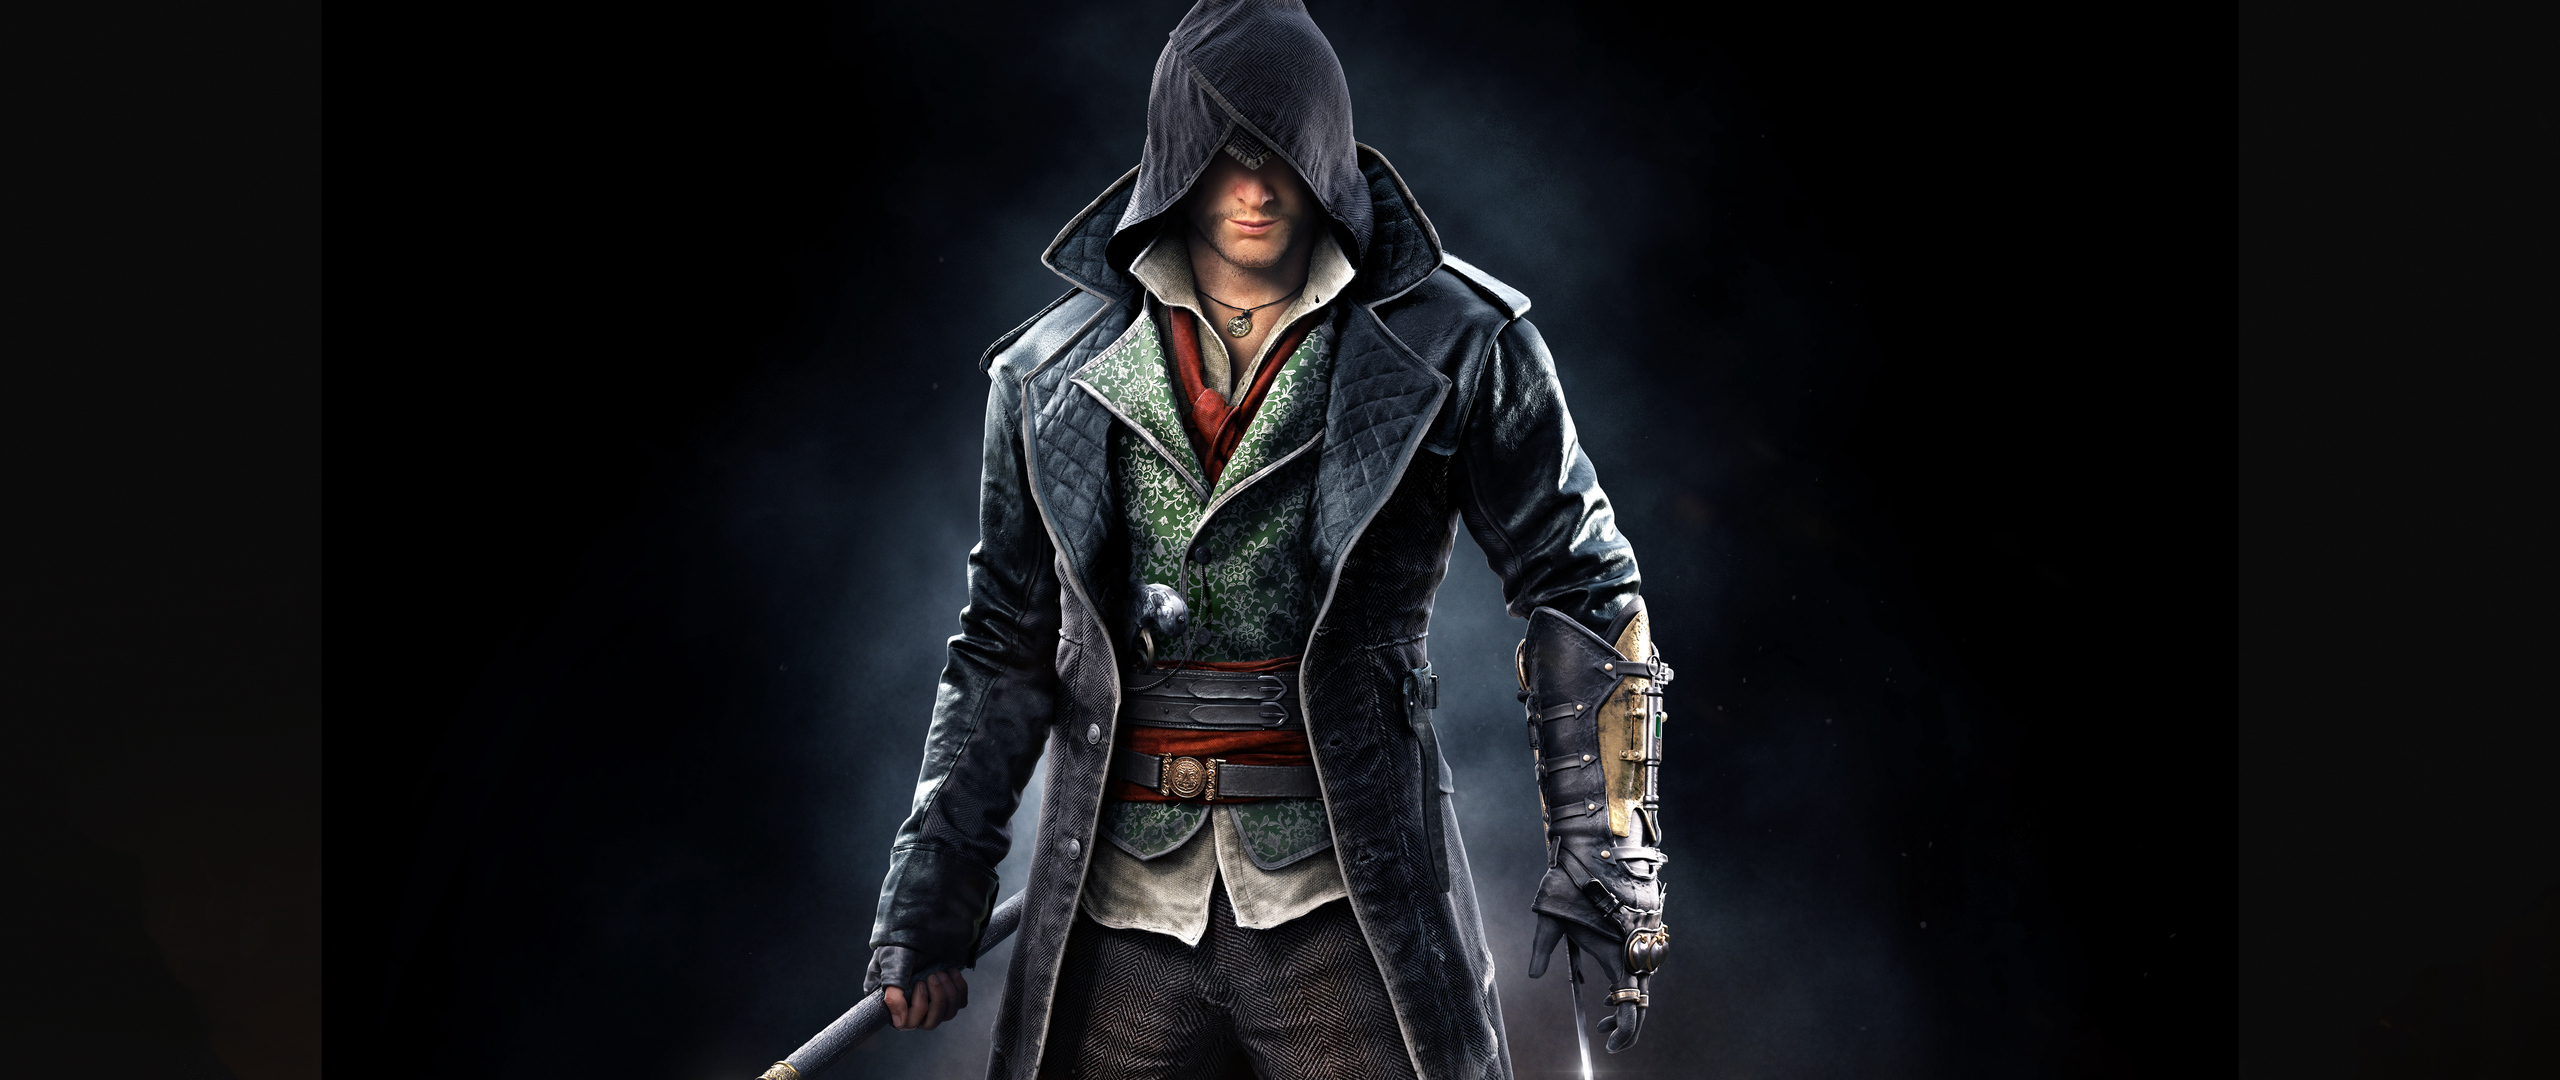 2019-assassins-creed-syndicate-game-8k-qu.jpg